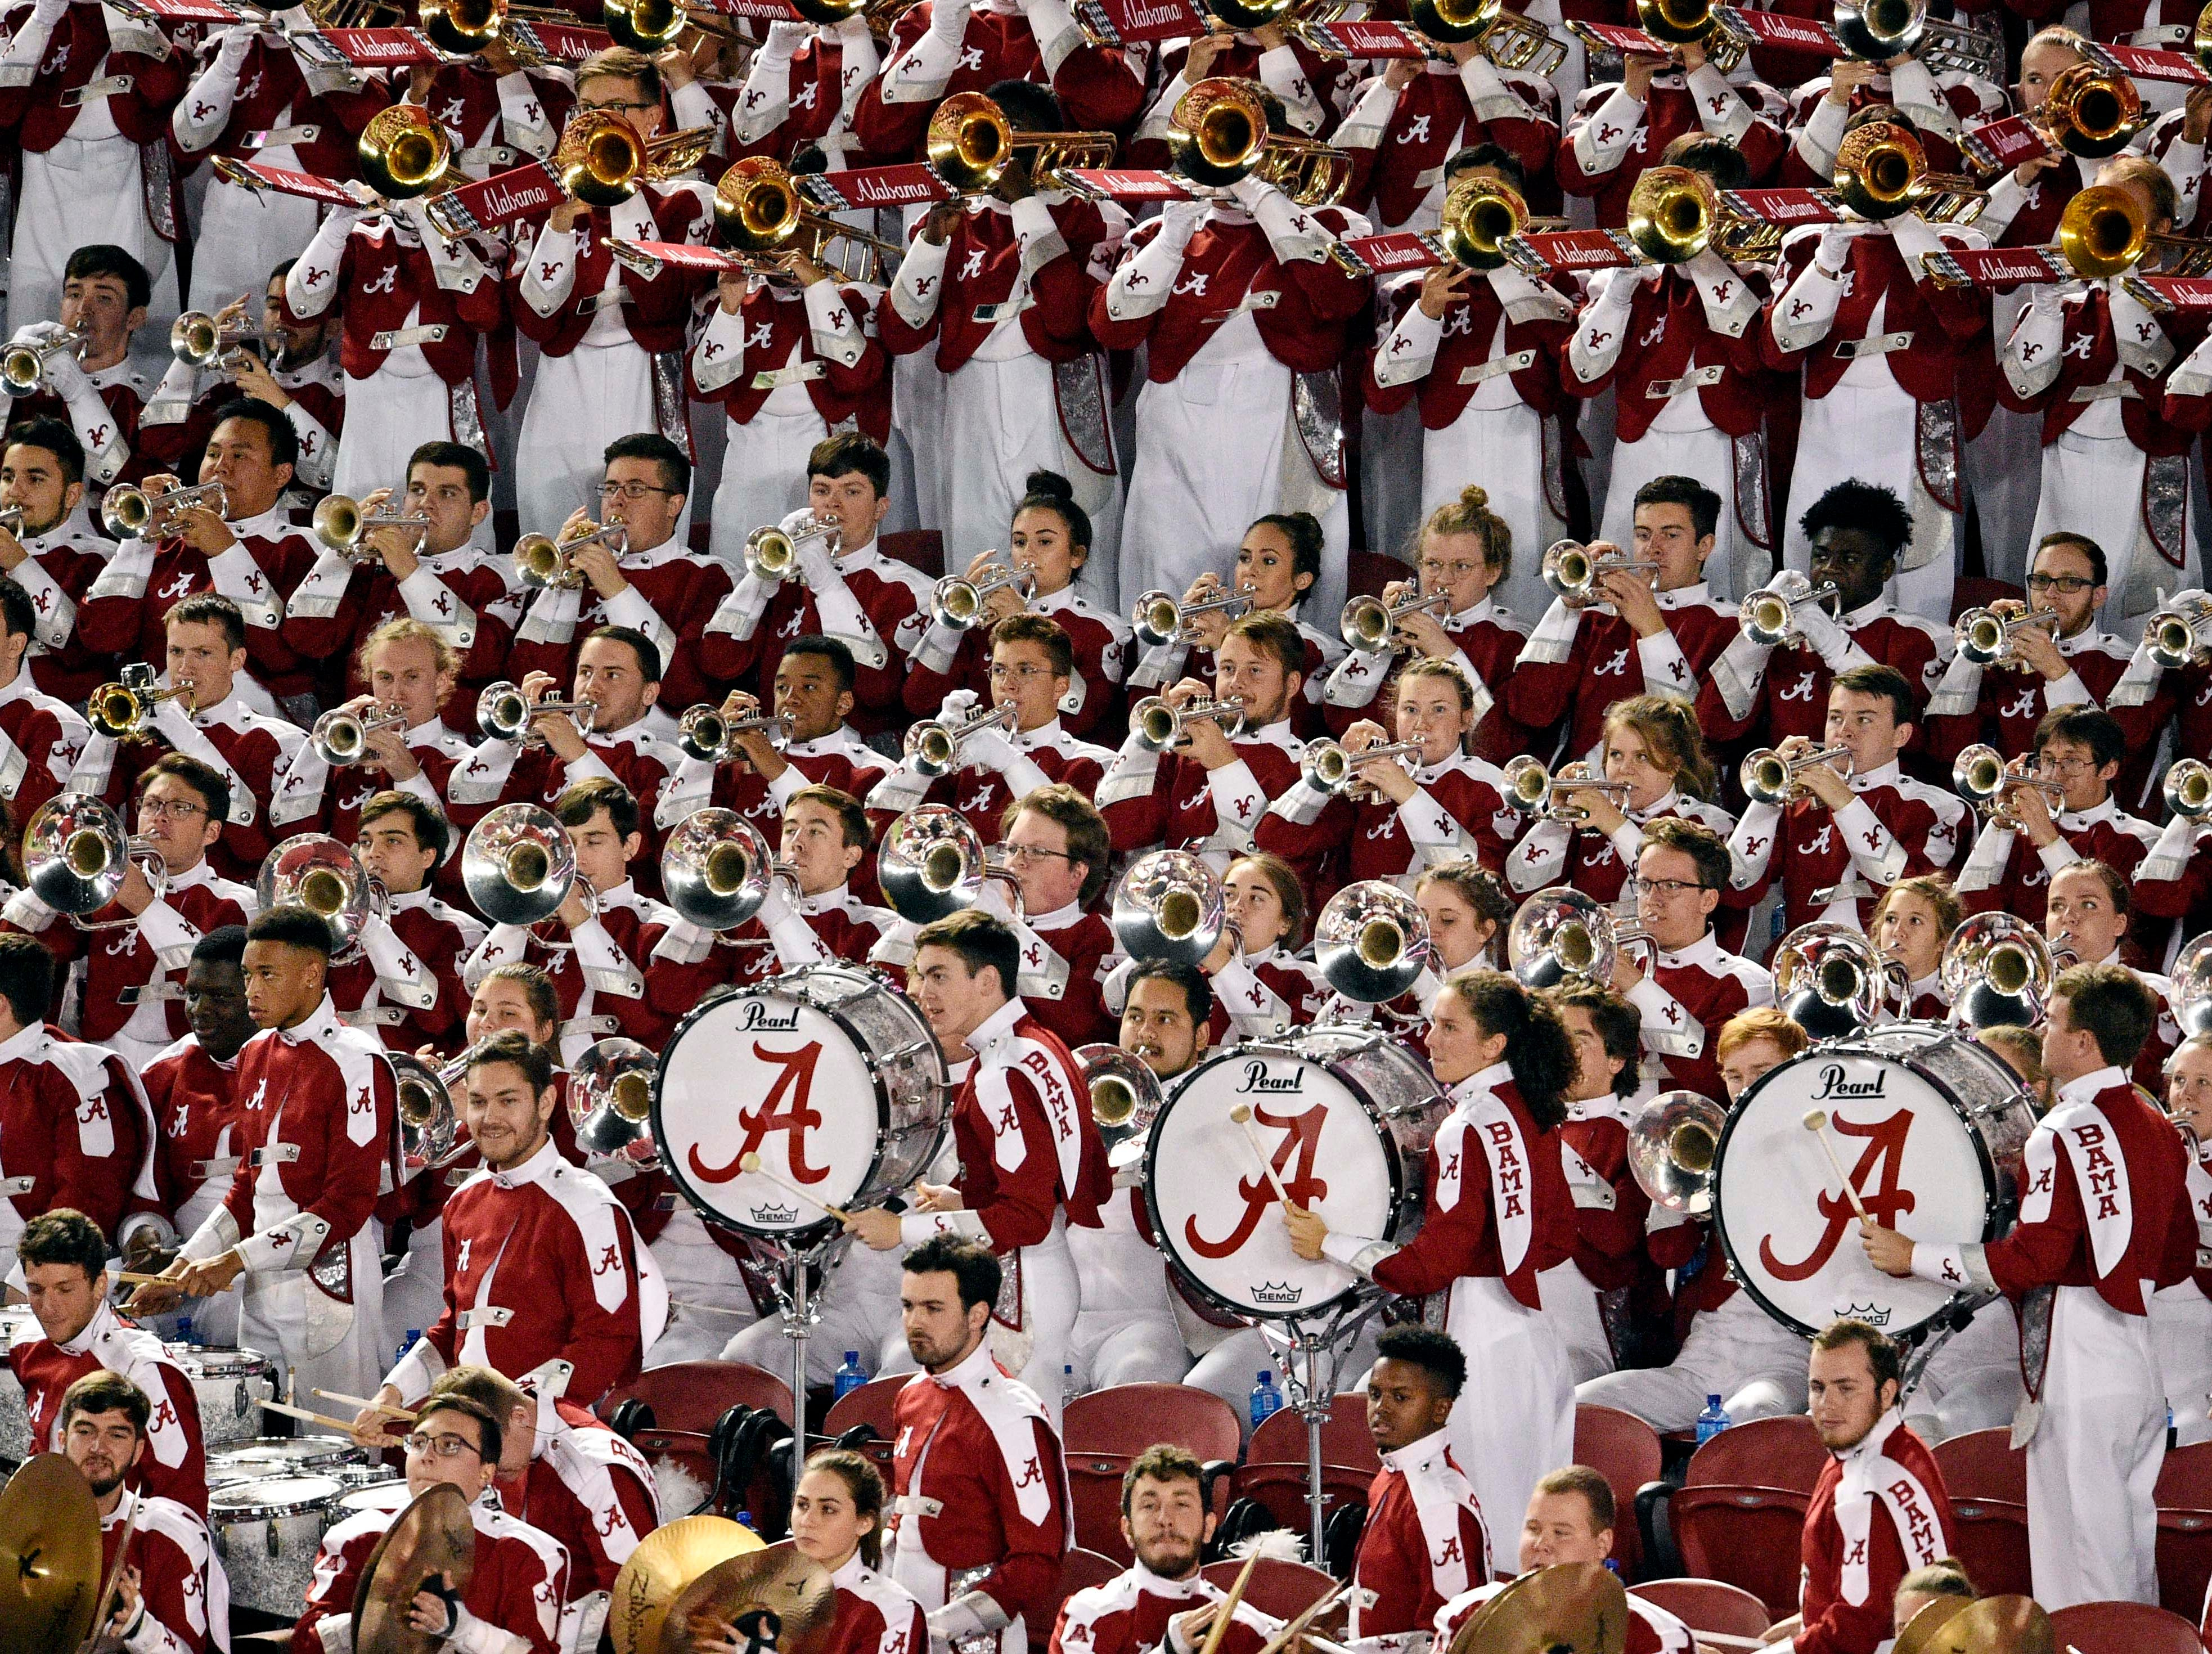 Alabama's band performs during the first half.